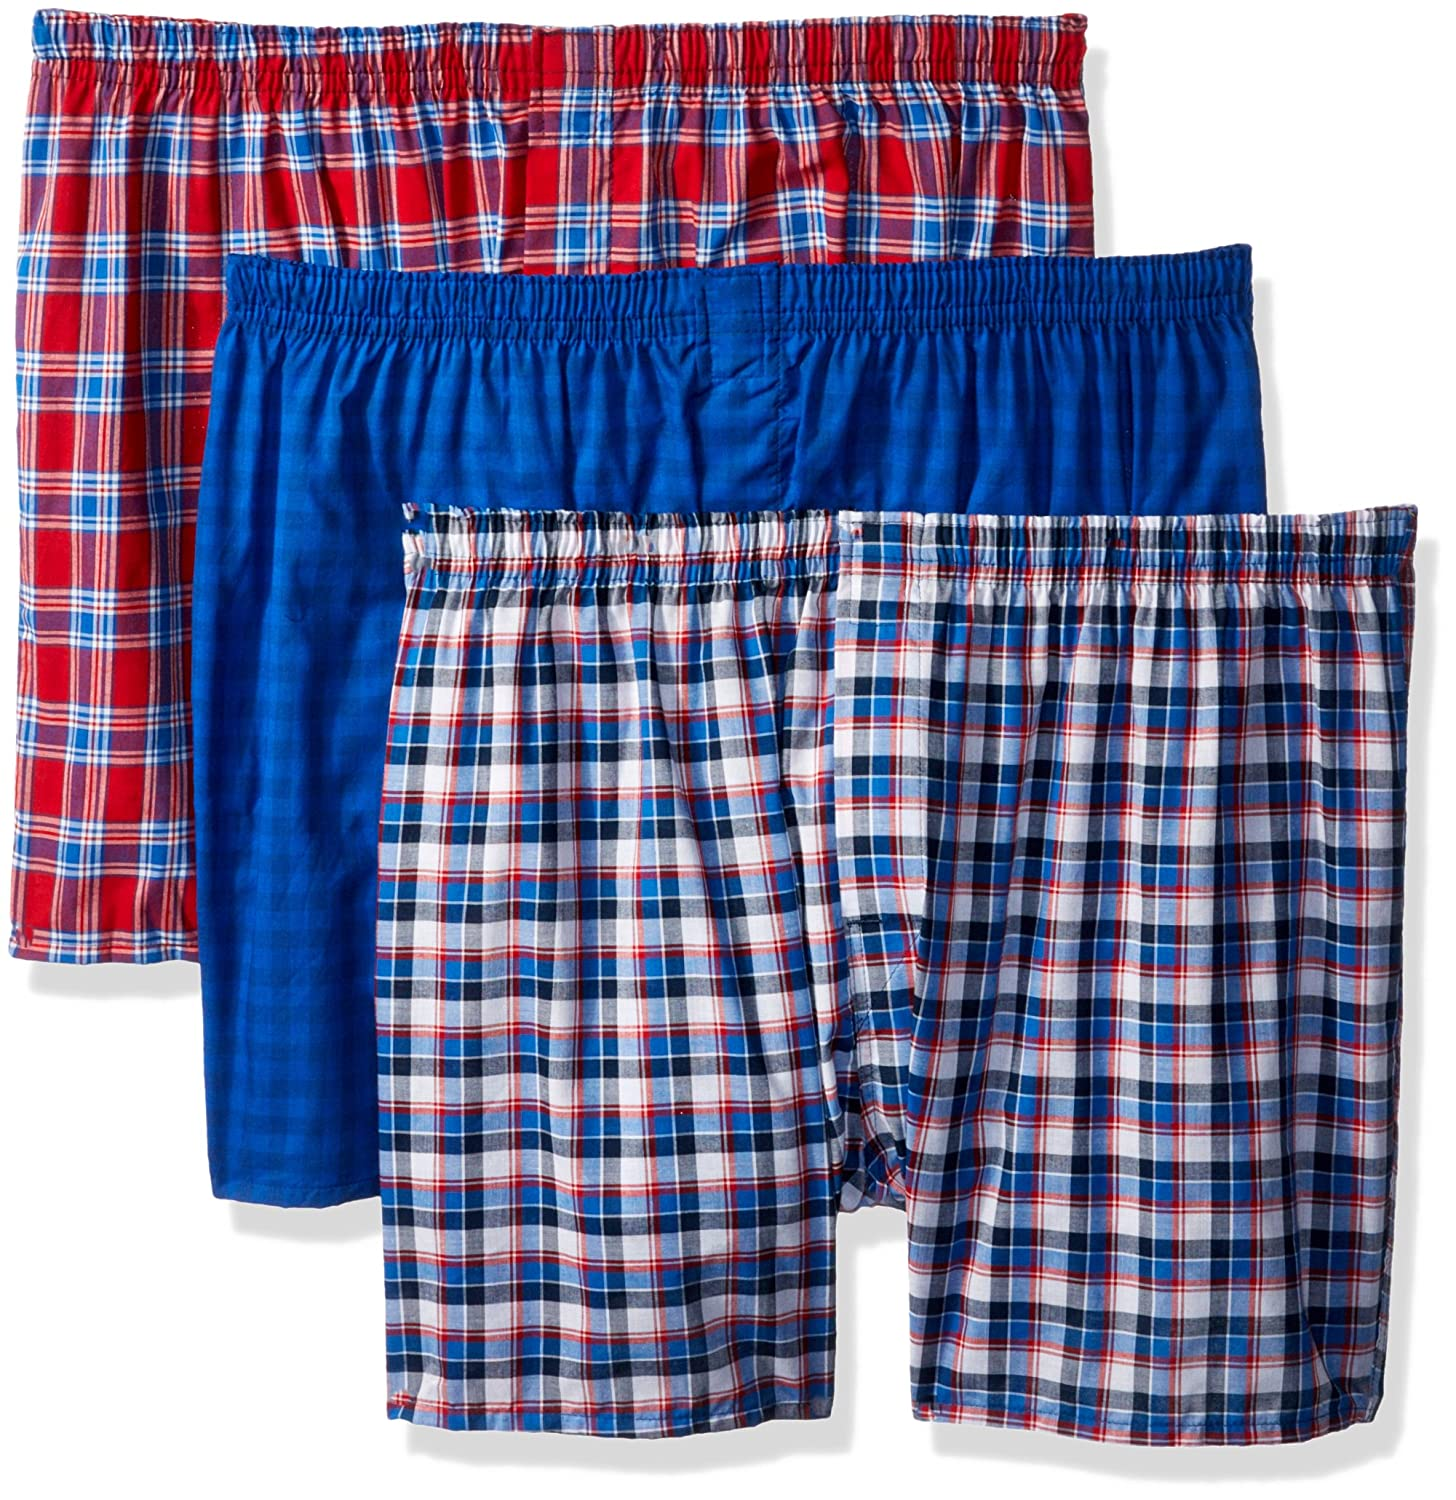 Hanes Red Label Men's ComfortBlend Woven Boxers Assorted XX-Large MBBXC3